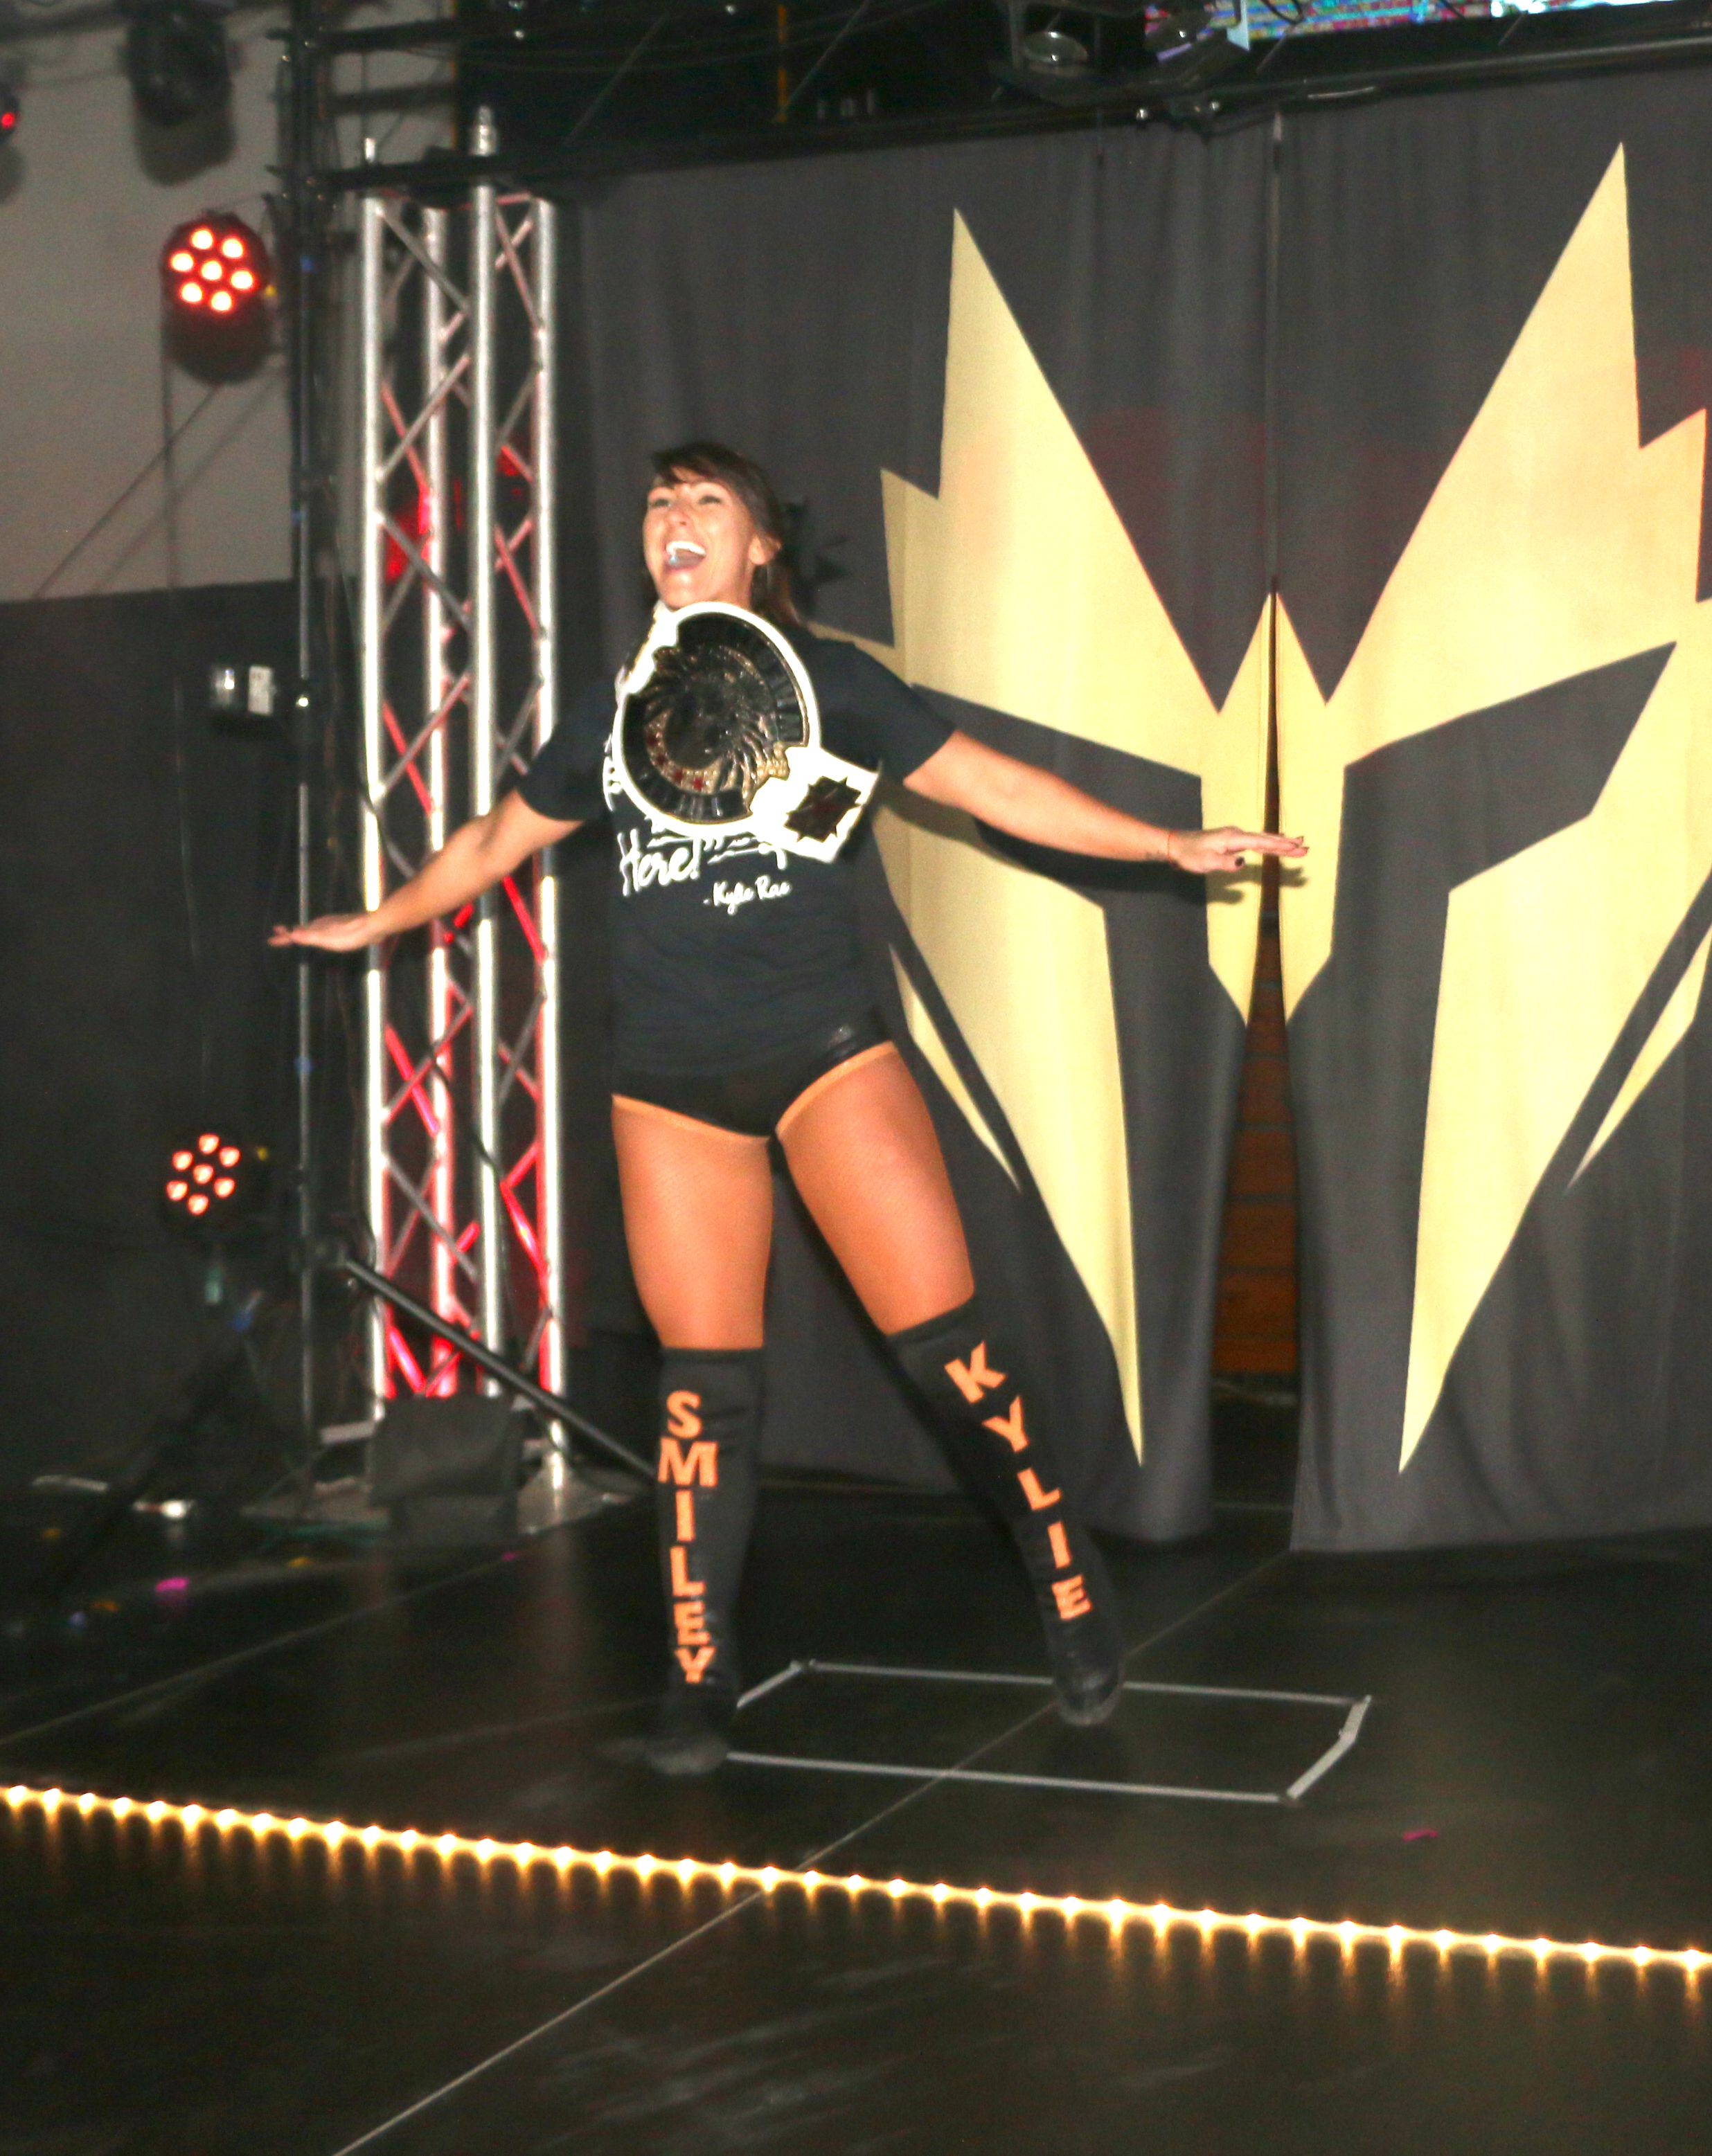 Freelance World Champion Kylie Rae makes her entrance.